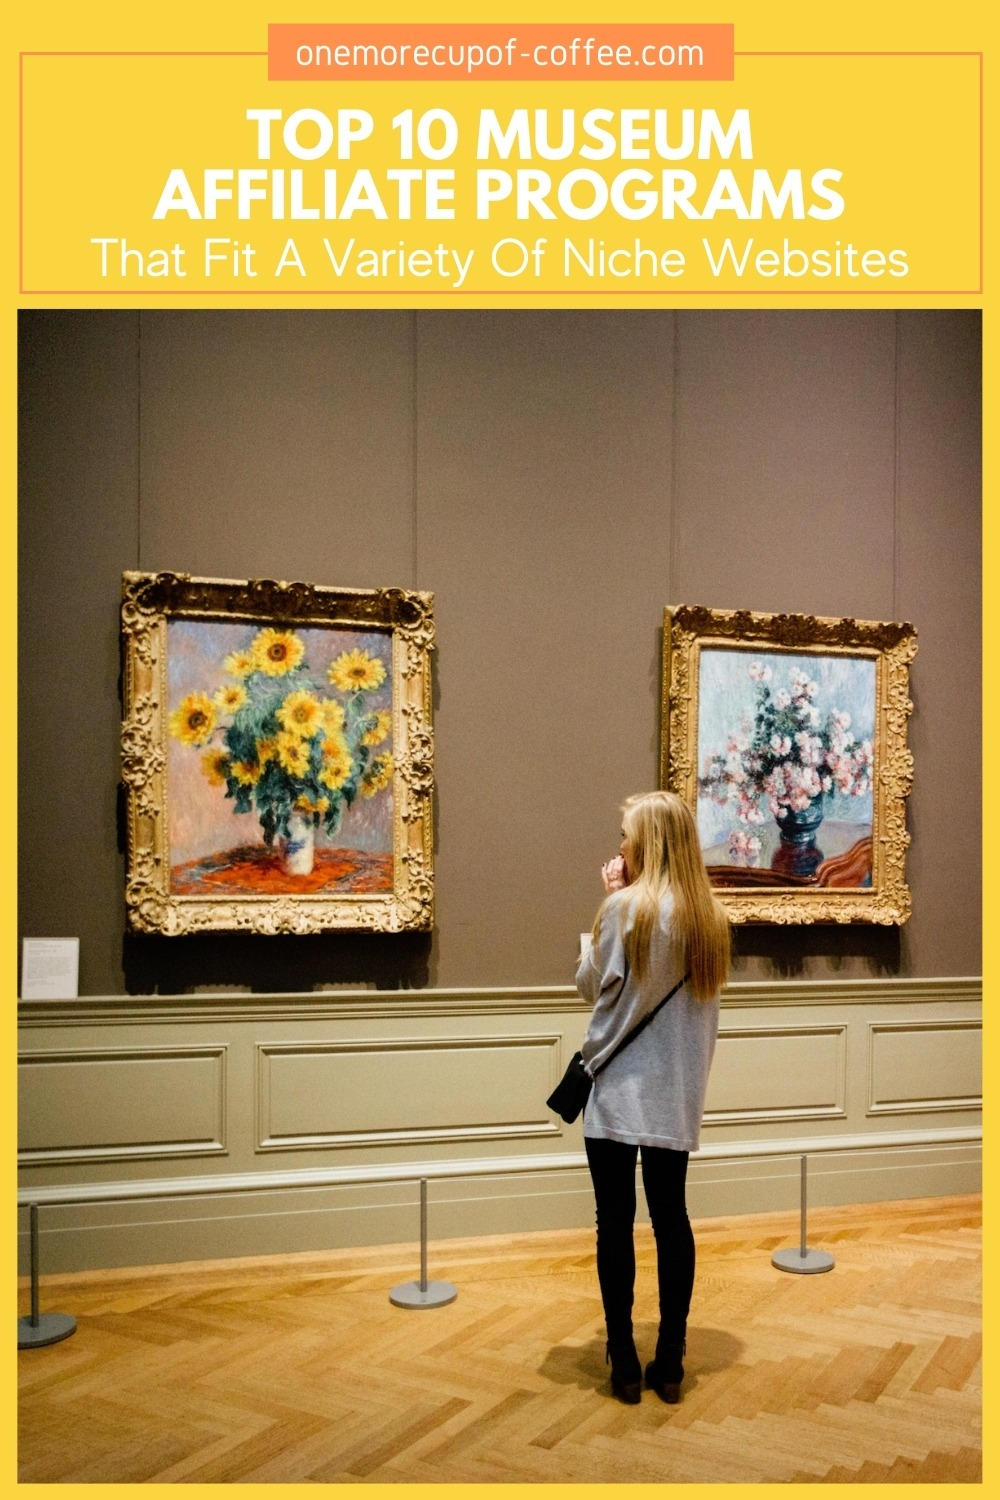 """woman inside a museum looking at paintings on the wall, with text overlay """"Top 10 Museum Affiliate Programs That Fit A Variety Of Niche Websites"""""""